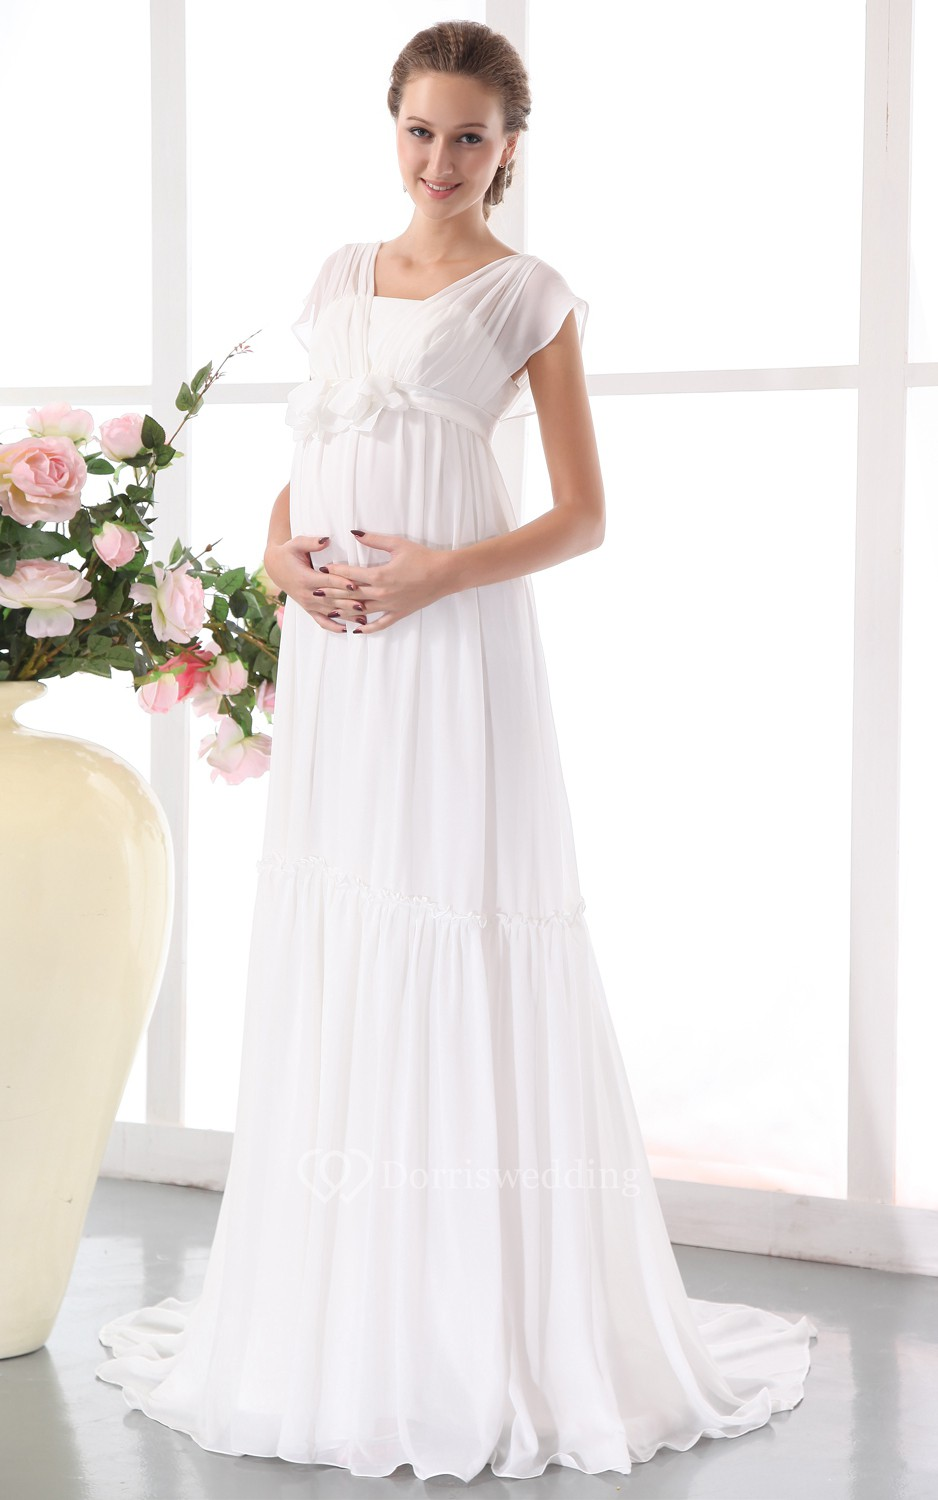 Chiffon pleated maternity dress with floral waistband for Maternity wedding dresses under 100